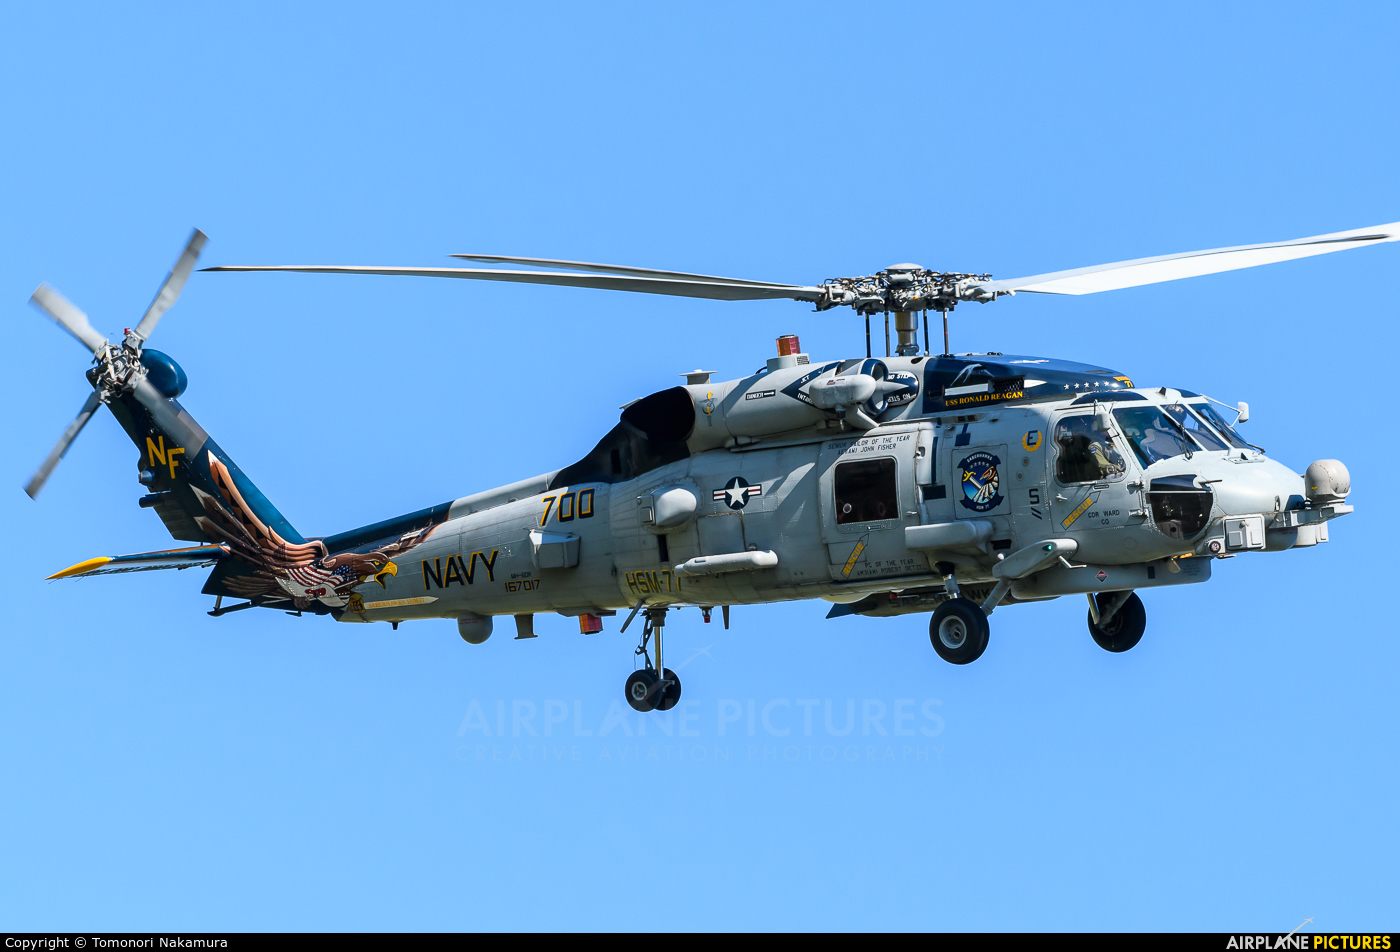 us navy seahawk helicopter with 167017 Usa Navy Sikorsky Mh 60r Seahawk on Mq 8 Fire Scout Vtuav Program By Land Or By Sea additionally Sikorsky Sh 60 Seahawk additionally File US Navy 050101 N 6817C 028 Helicopters depart USS Abraham Lincoln  CVN 72  en route to Aceh  Sumatra  Indonesia in addition Sikorsky Sh 60 Sea Hawk 168573 usa Us Navy 270212 large in addition Iranian Navy Boat Threatens U S Helicopter N689286.